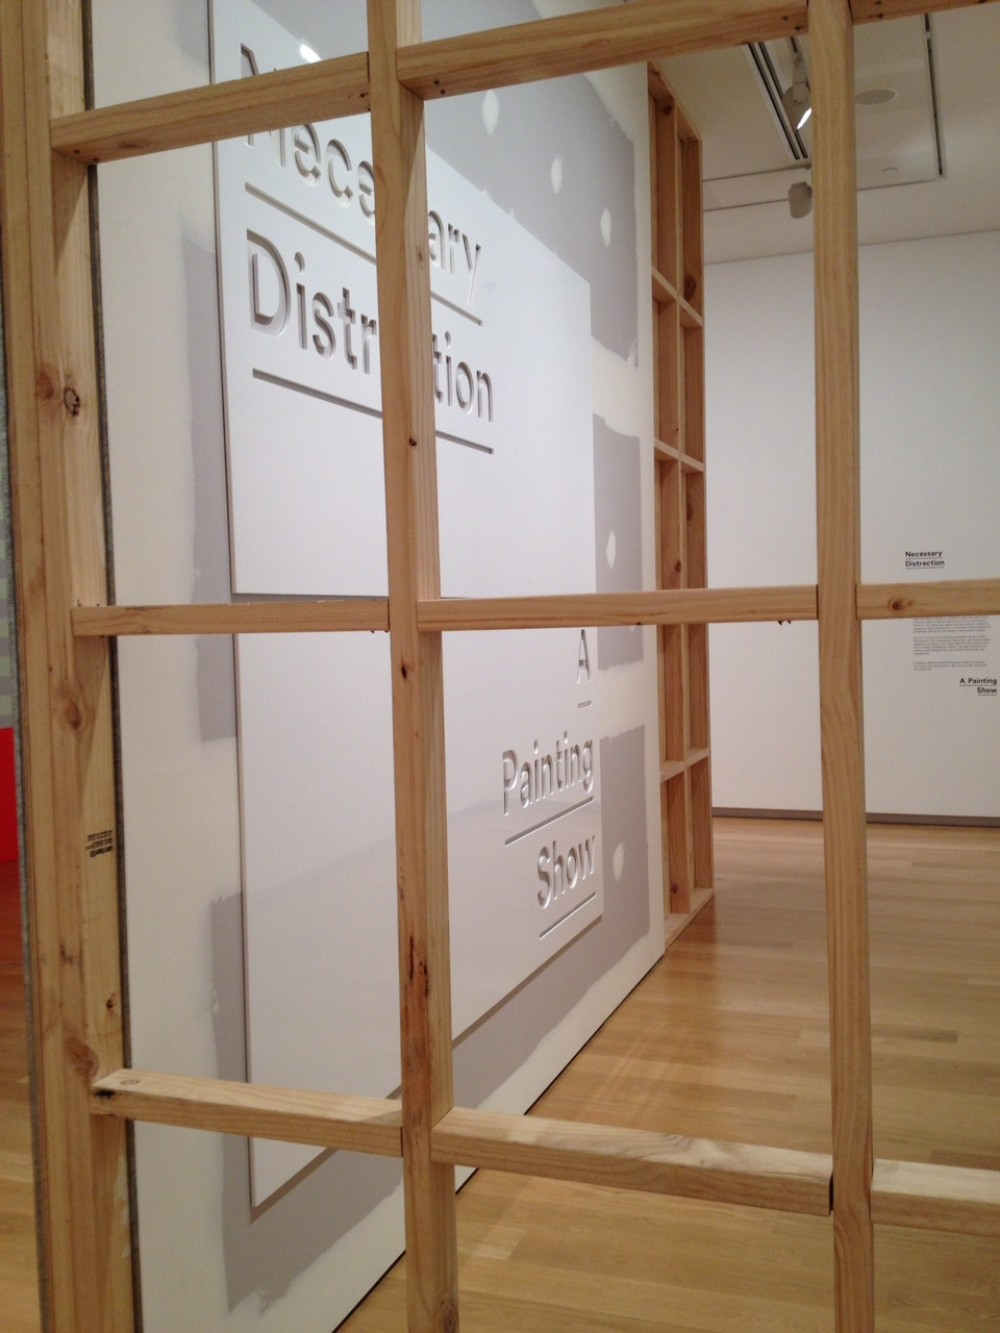 An image of the first wall of the exhibition. A wooden grid is in the foreground, and through it an unpainted gib board wall can be seen with a large white sign mounted on it. The sign reads 'Necessary Distraction, A Painting Show'.